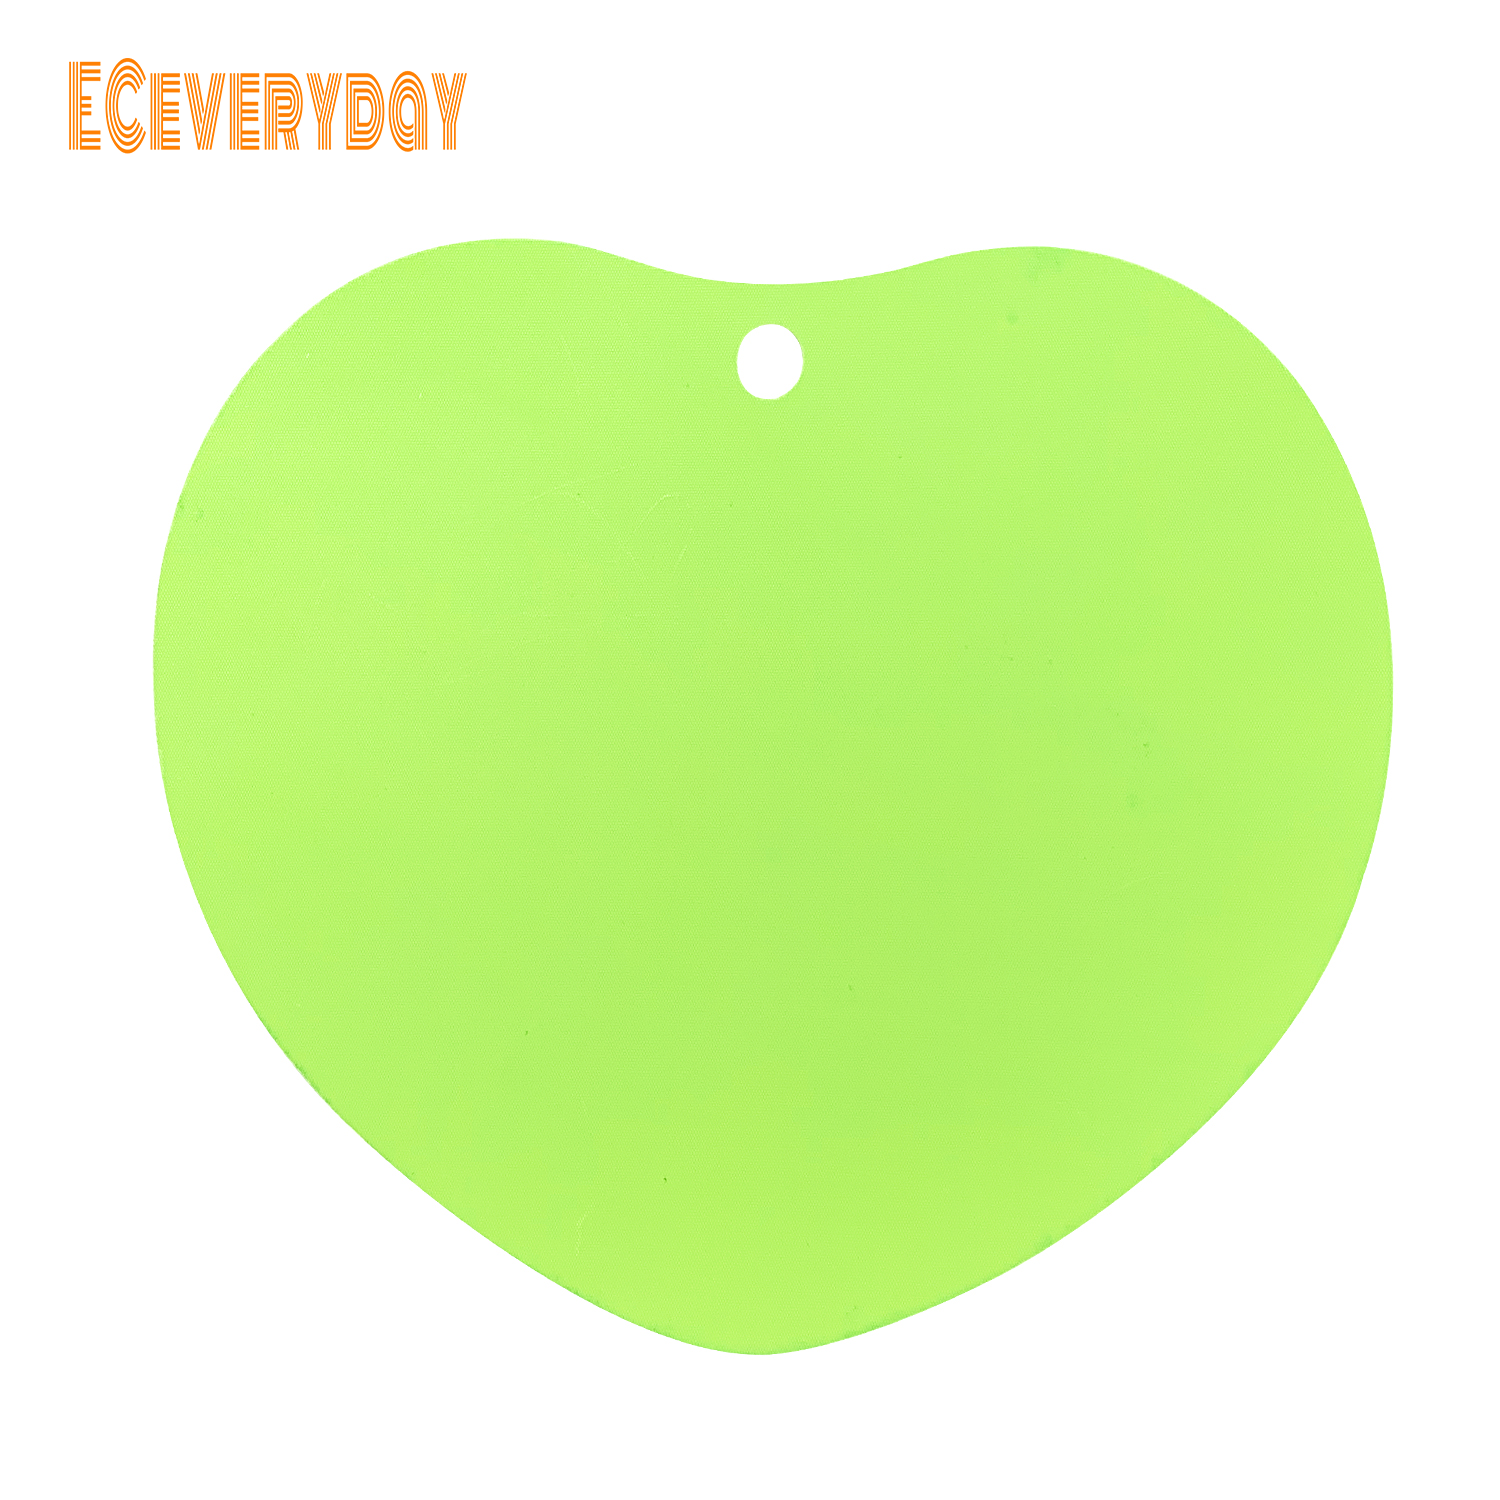 ECeveryday Portable Moisture-proof Picnic Fruit Salad Cutting Board (Green Heart Shaped)